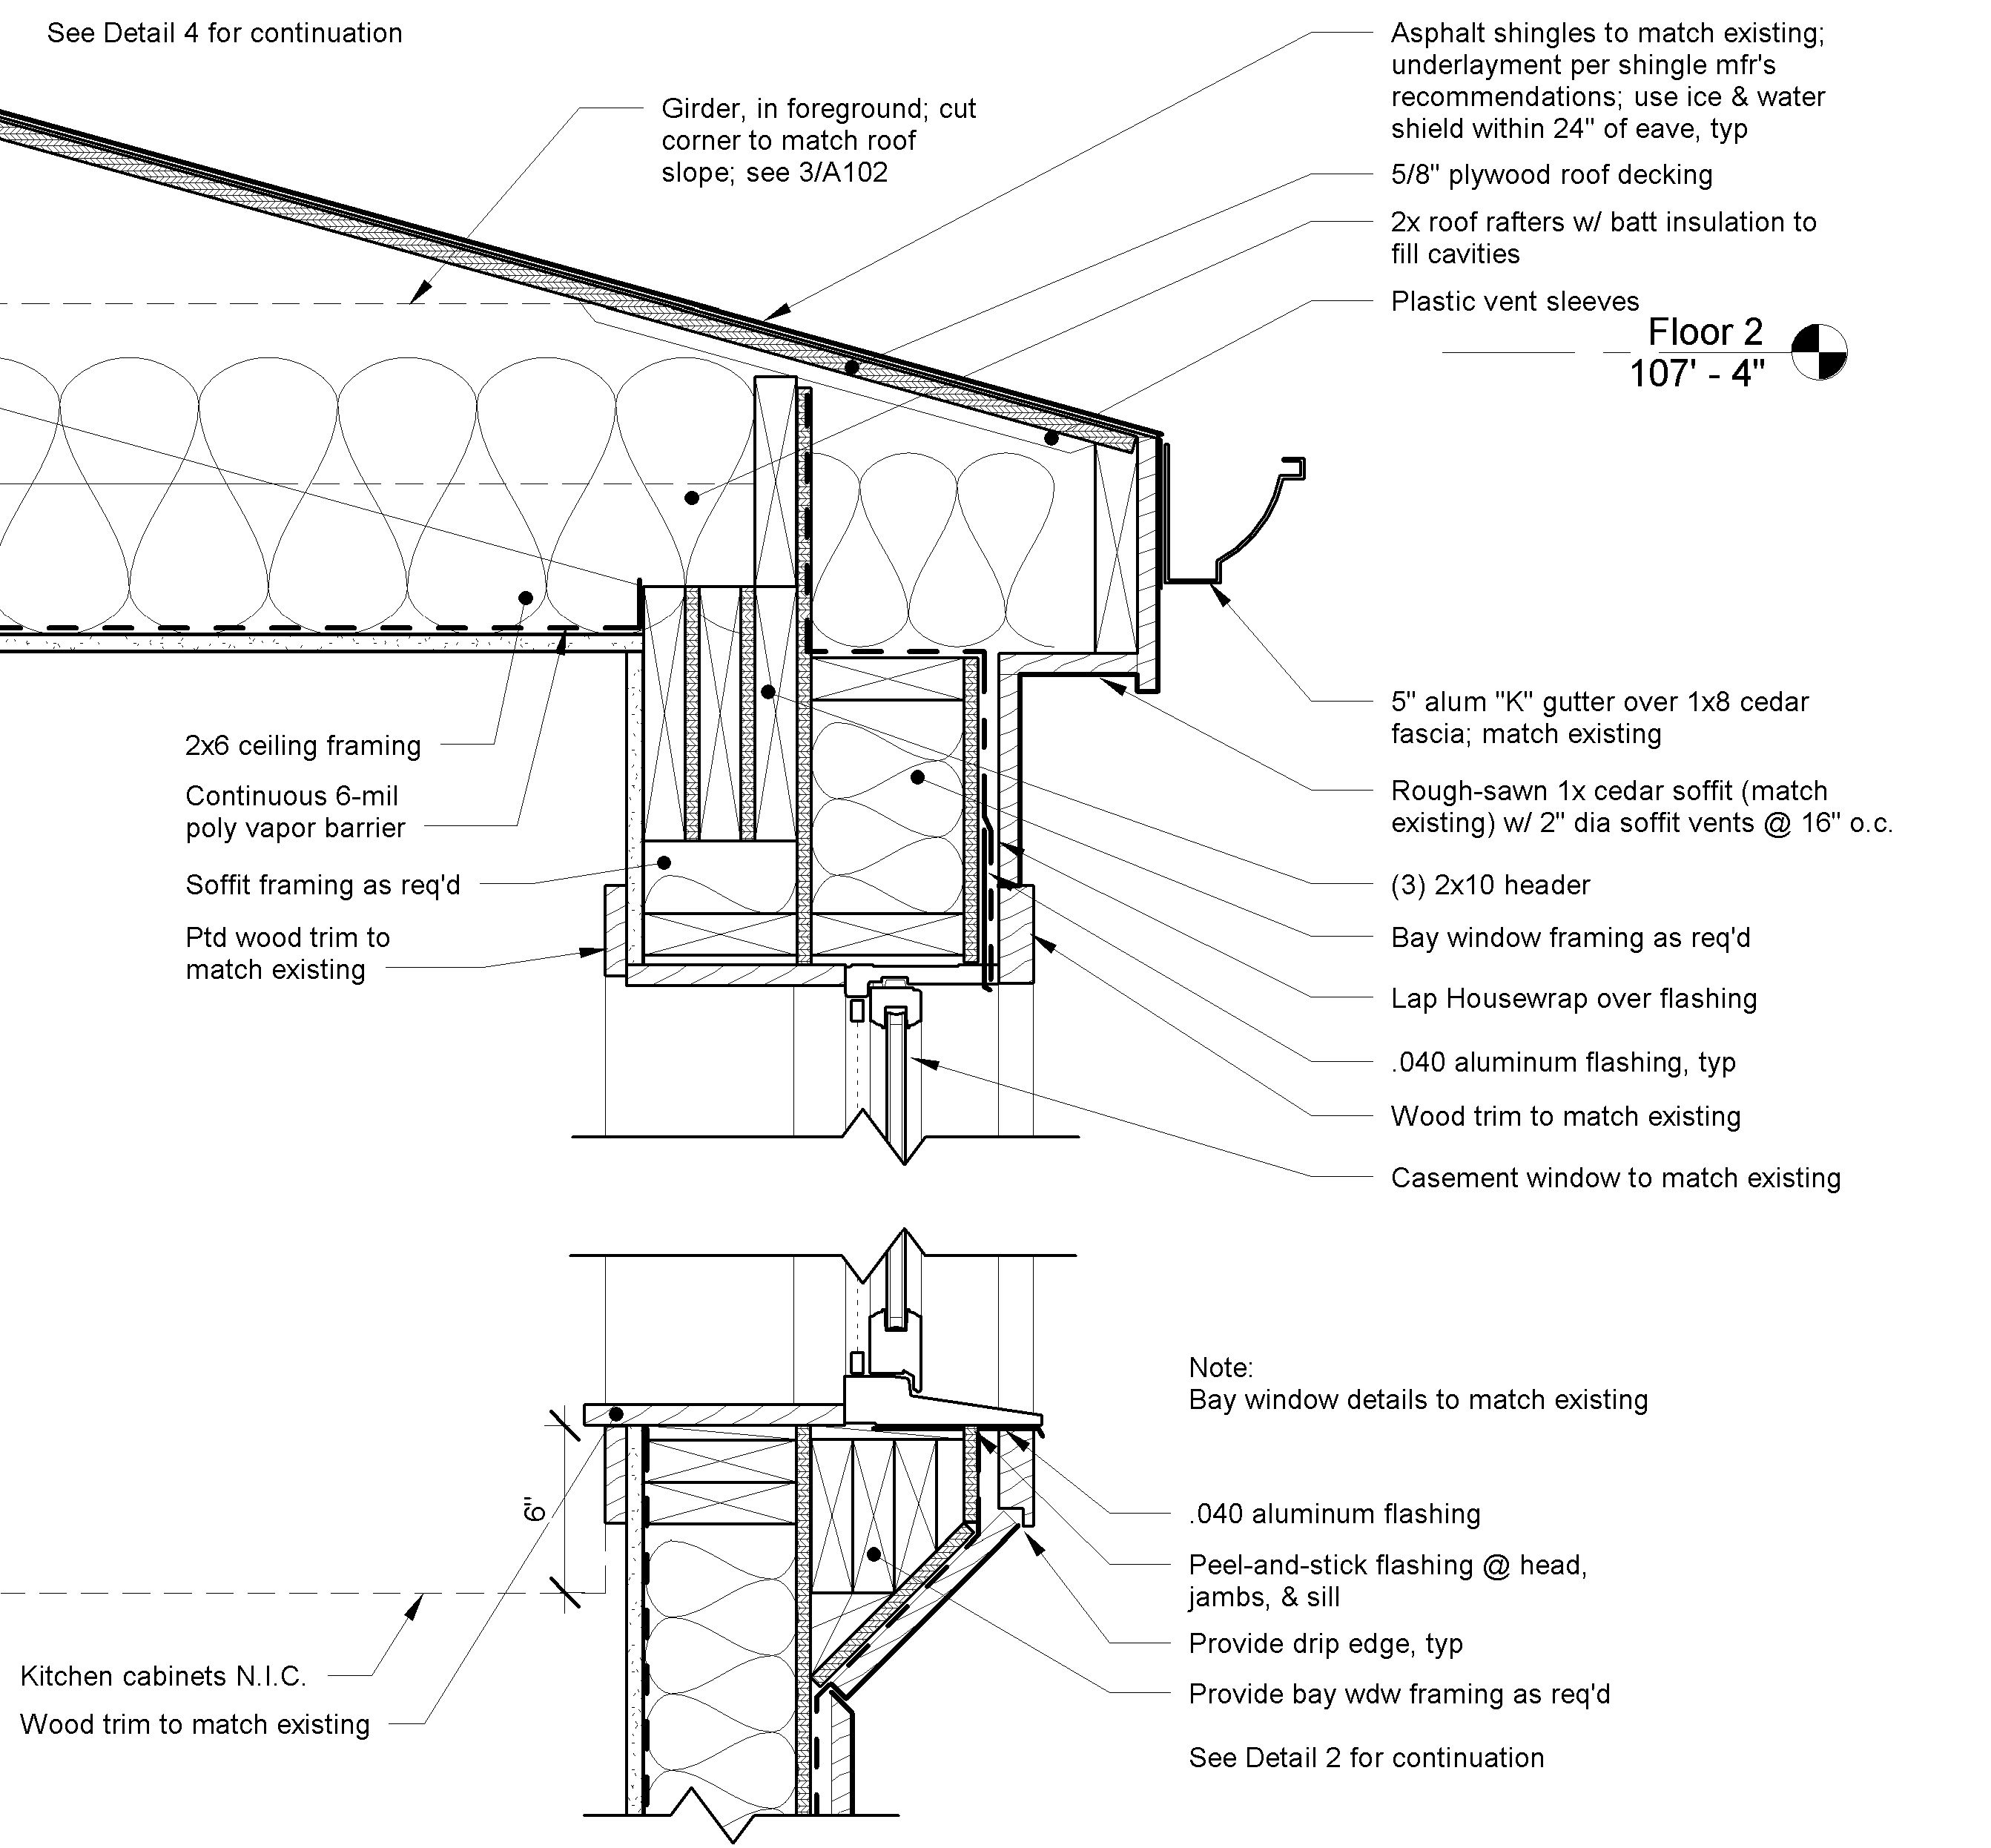 energy efficient revit construction details google on construction wall structure general info id=59217